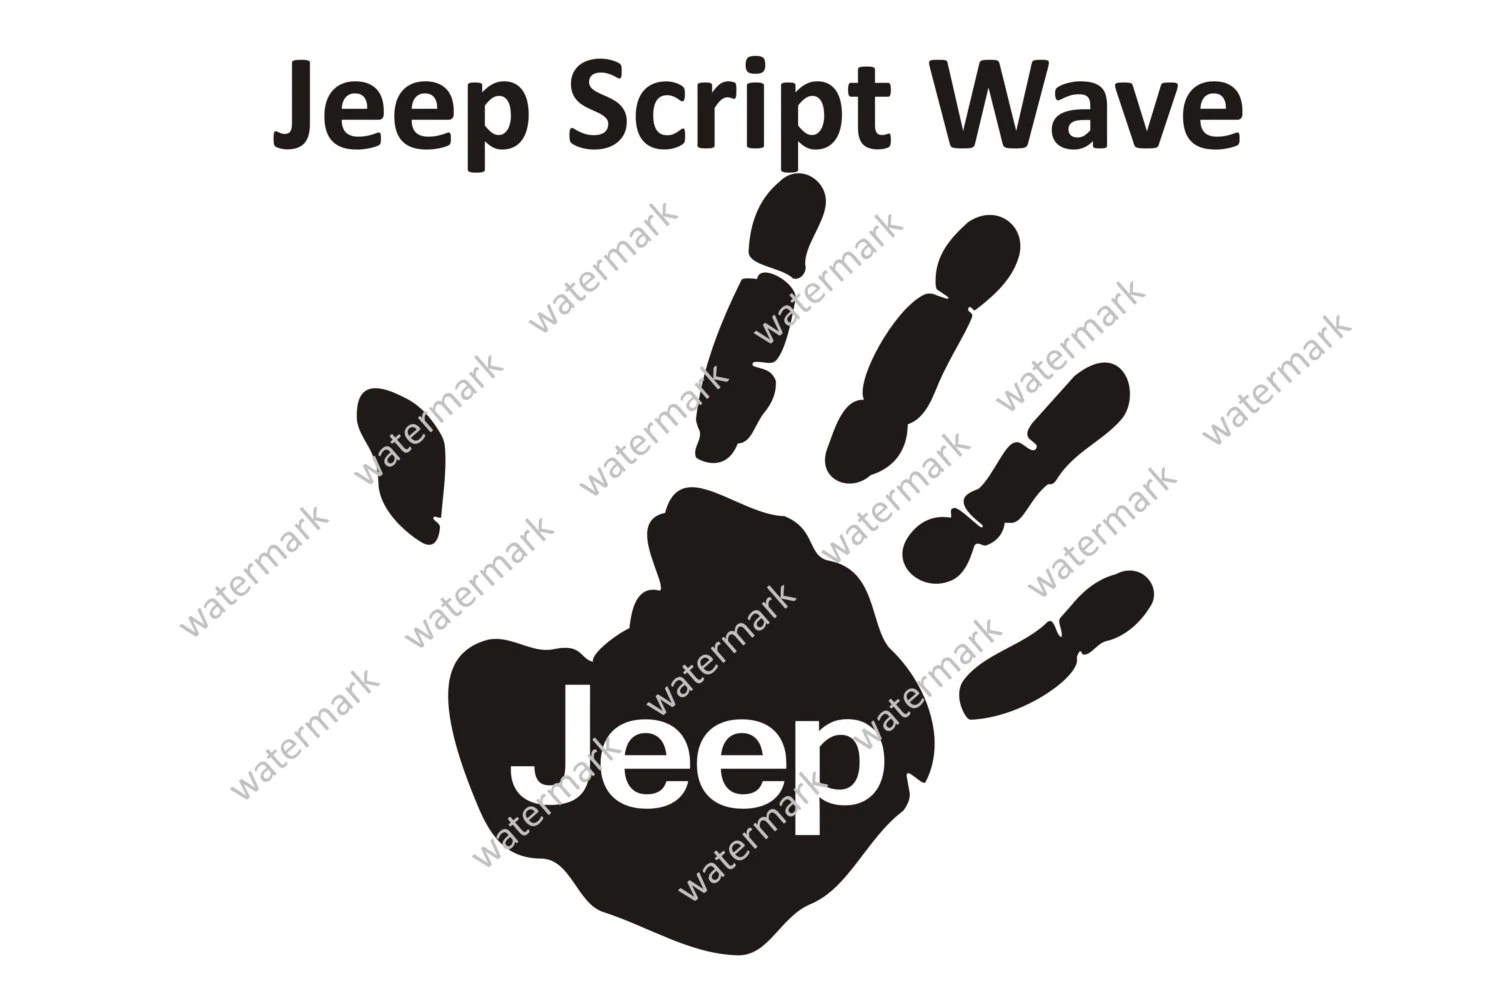 Jeep Script Logo Jeep Wave Decal Sticker Small By Robnmon